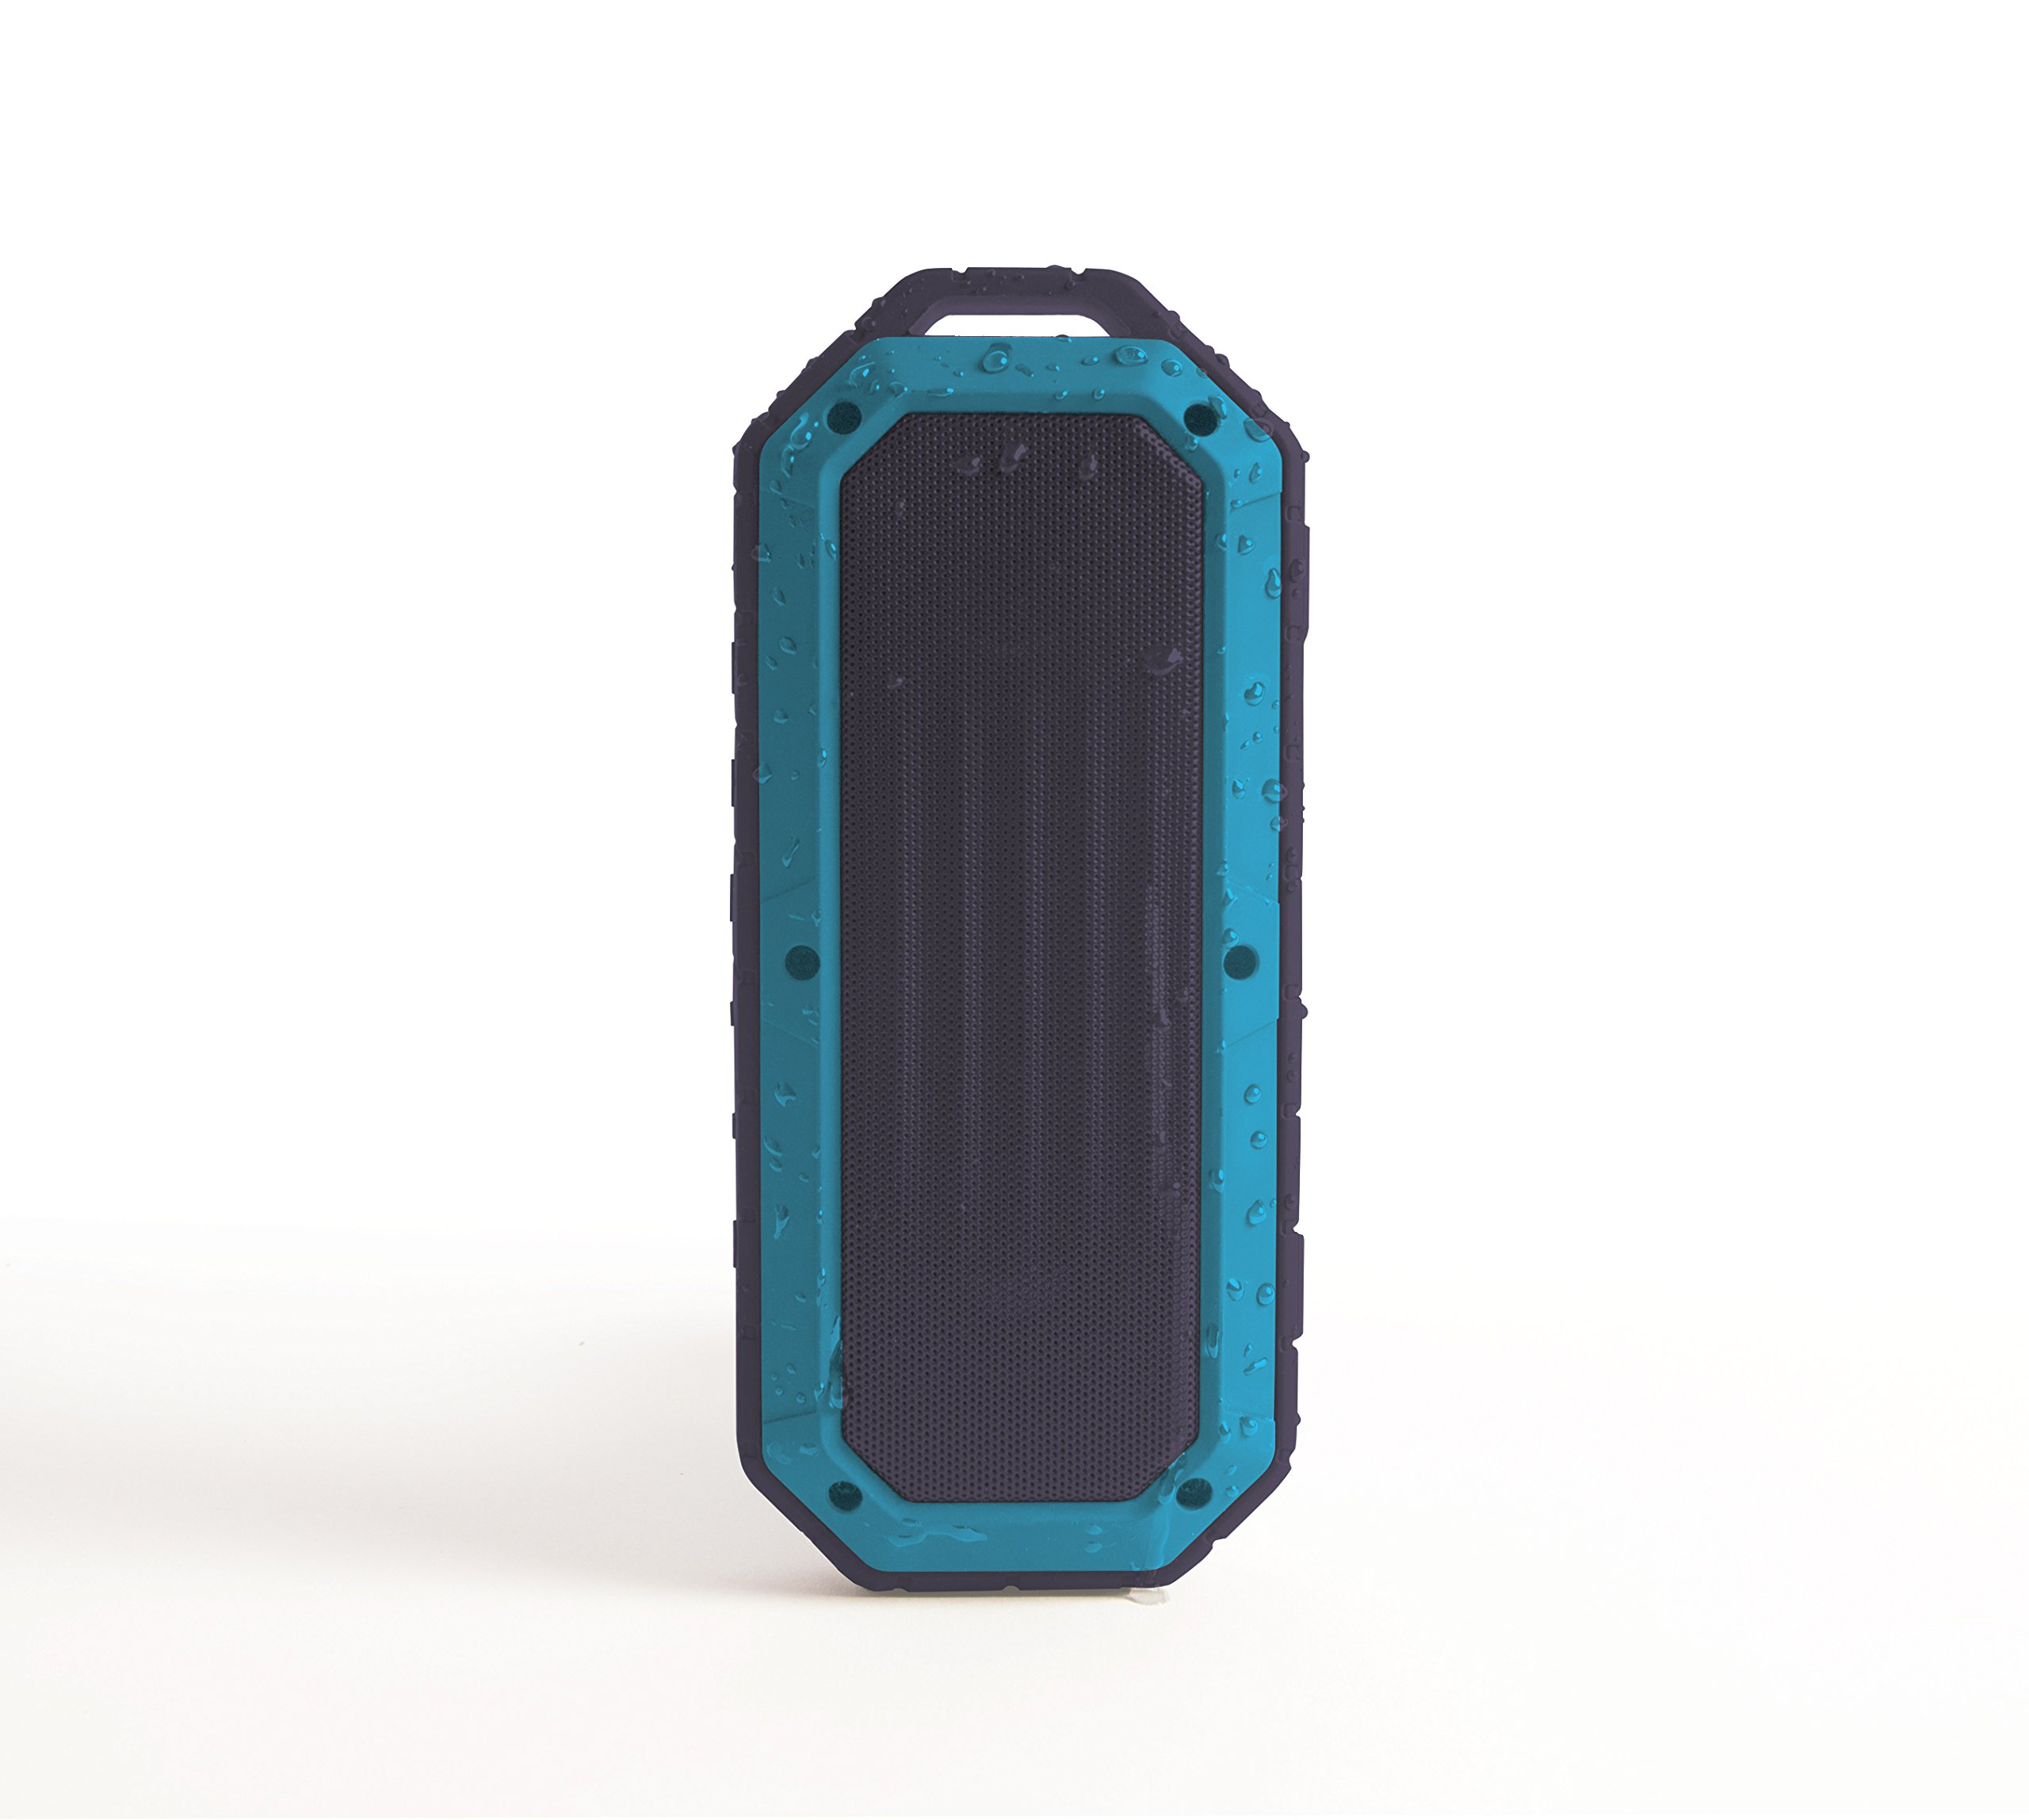 iJoy Beach Bomb IP66 Waterproof Shockproof Portable...